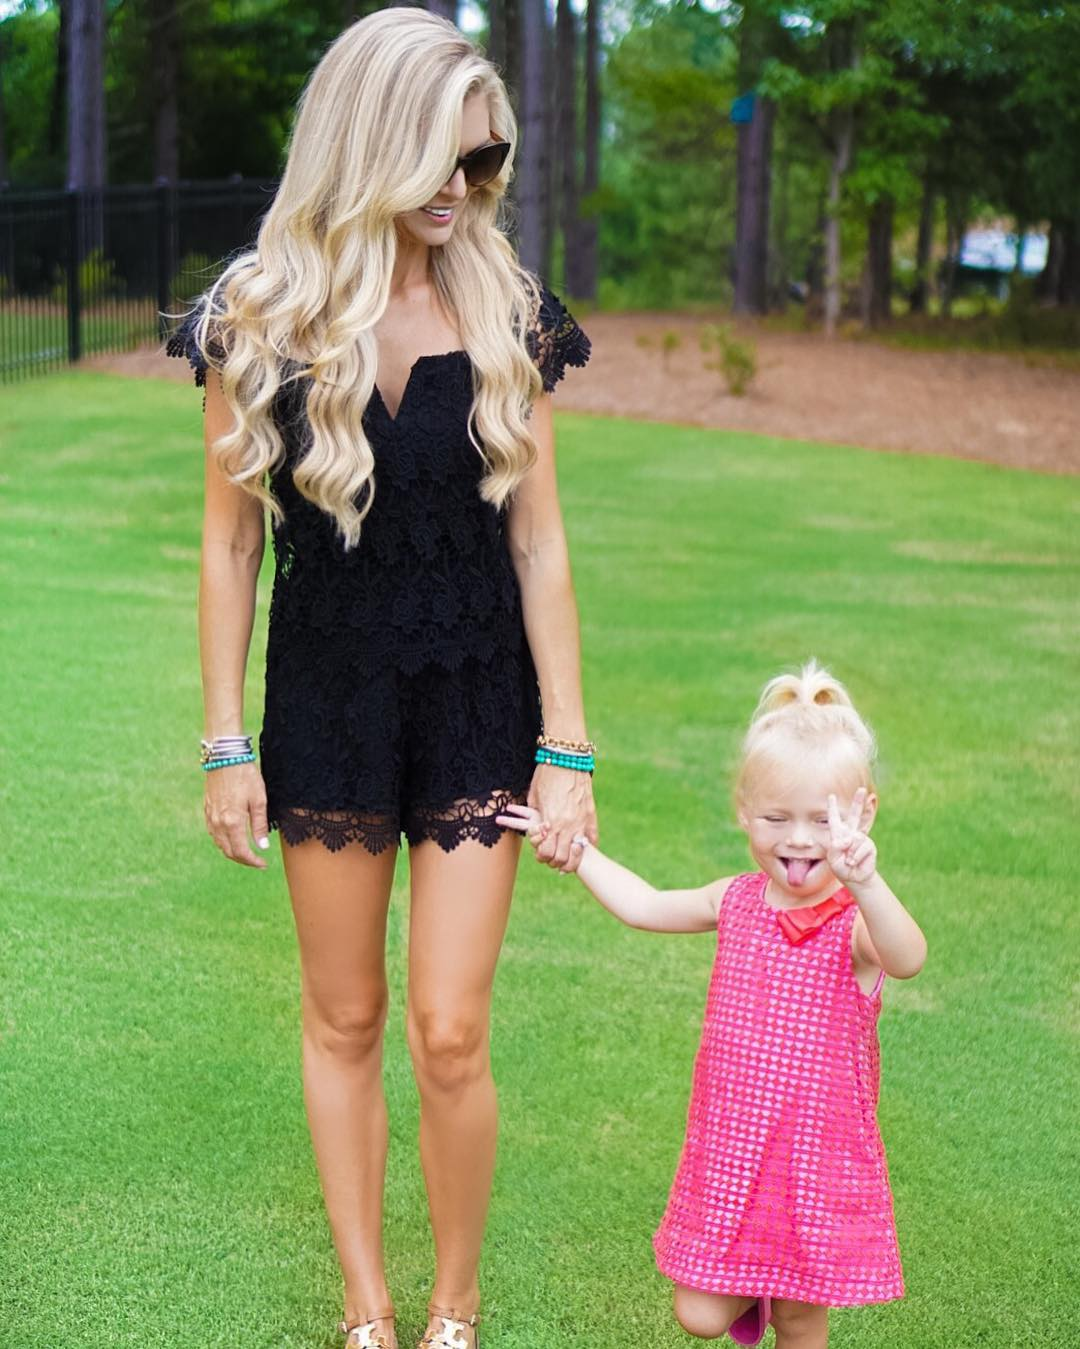 Just romping around with this crazy kiddo! Lake bound and hoping for some sunshine!!! http://liketk.it/2oNd7 #lifewithblove #momlife #saturdaze #summer